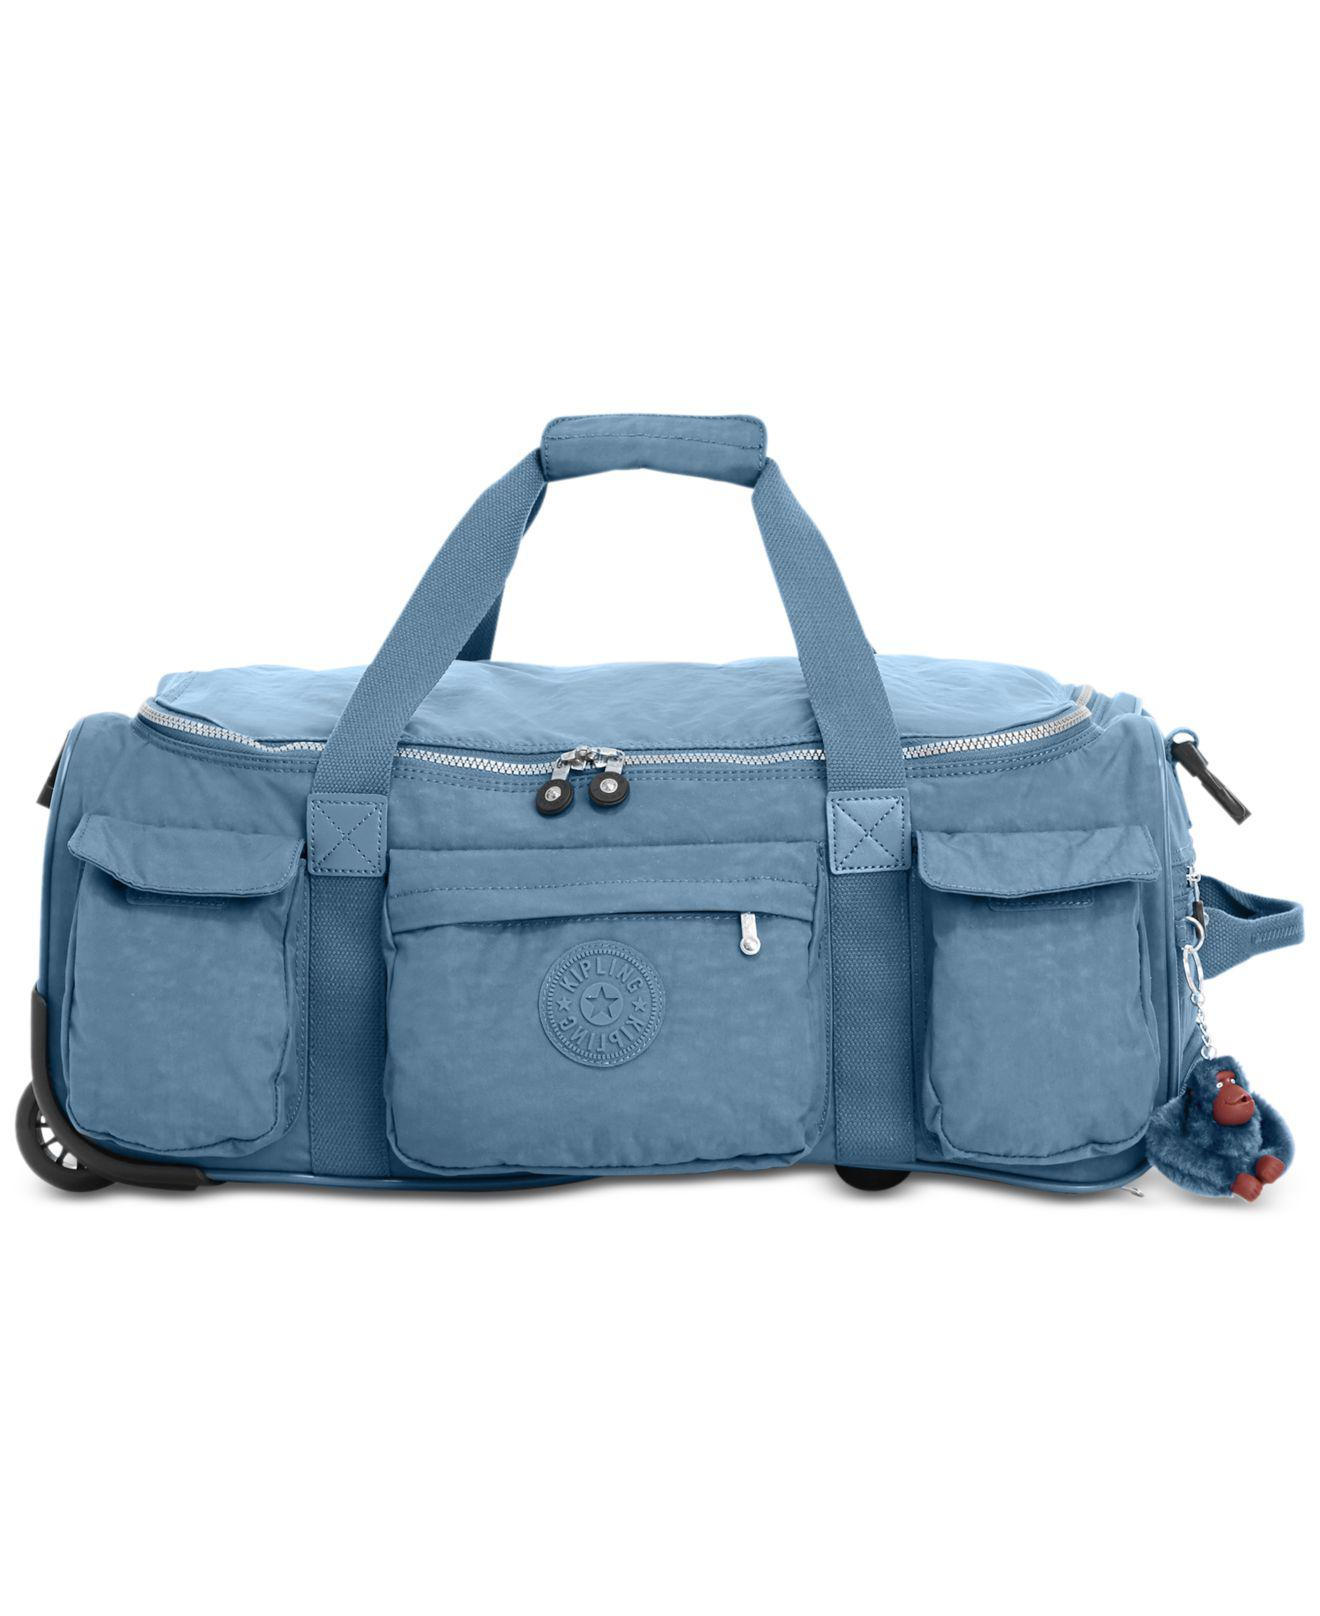 6d088787ebf Kipling Discover Small Carry-on Wheeled Duffle in Blue - Lyst